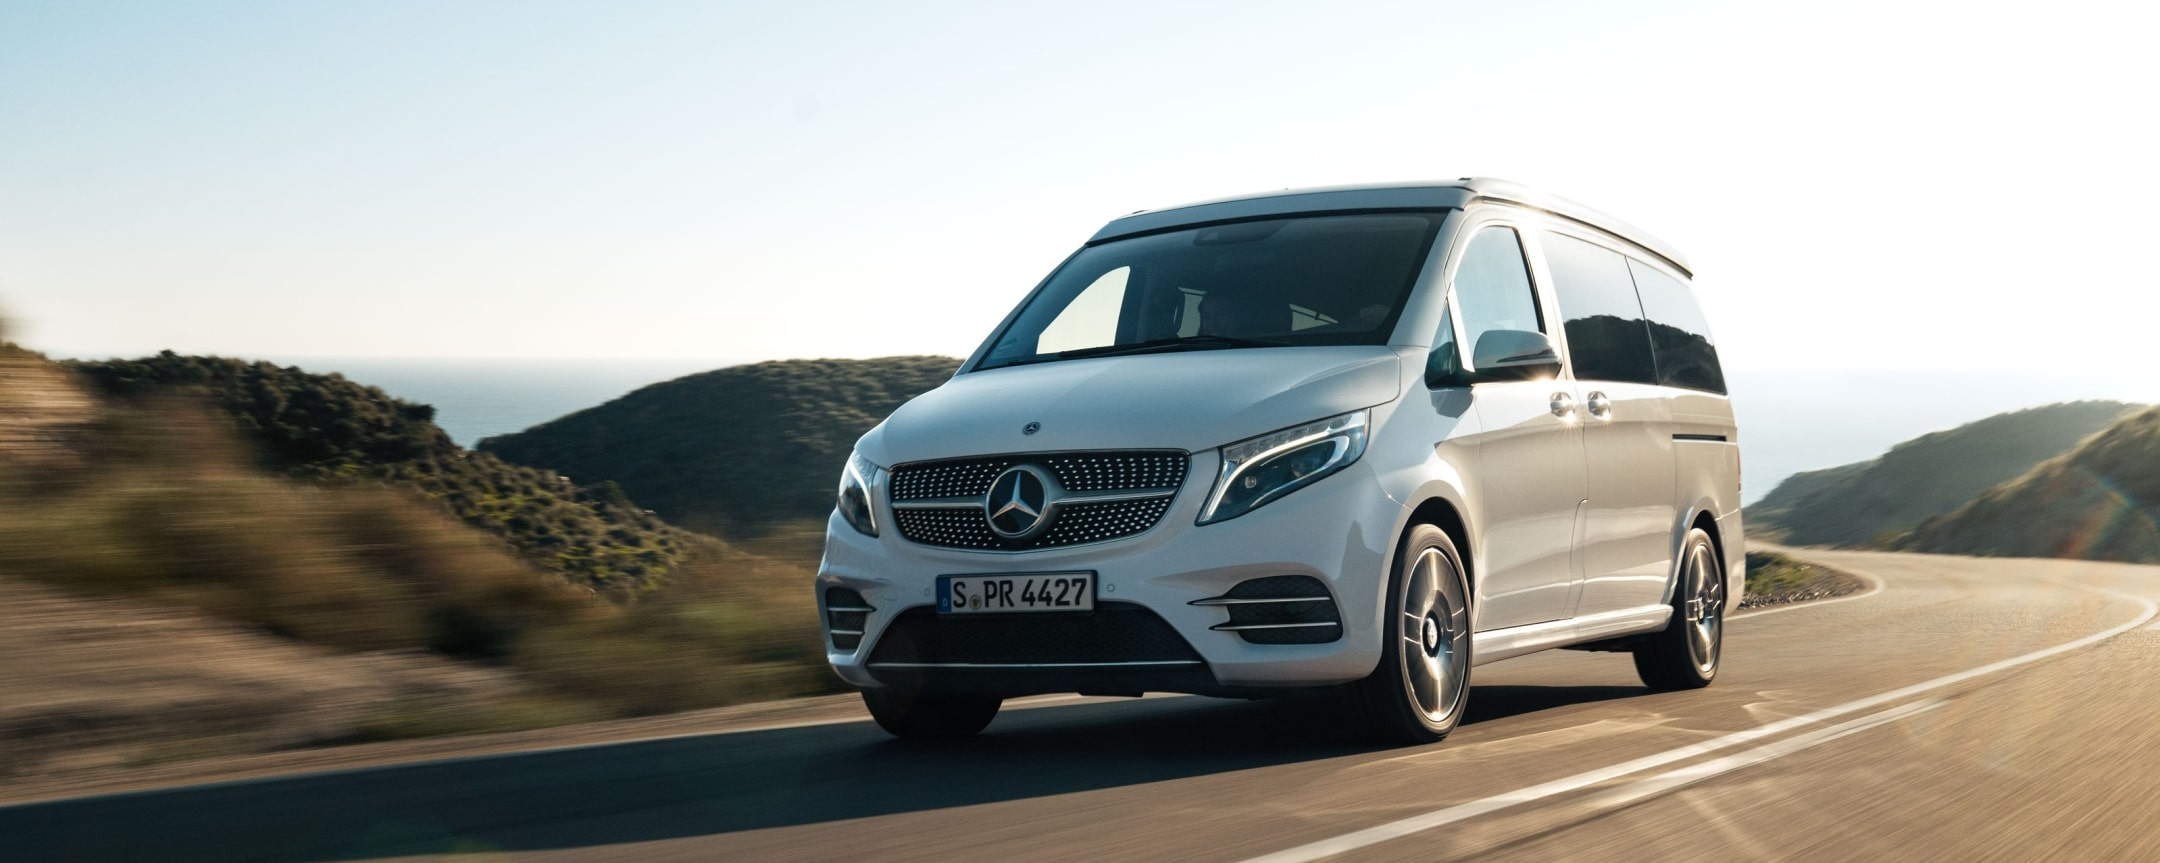 Finanzdienste für Mercedes-Benz Tourer & Reisemobile, Marco Polo